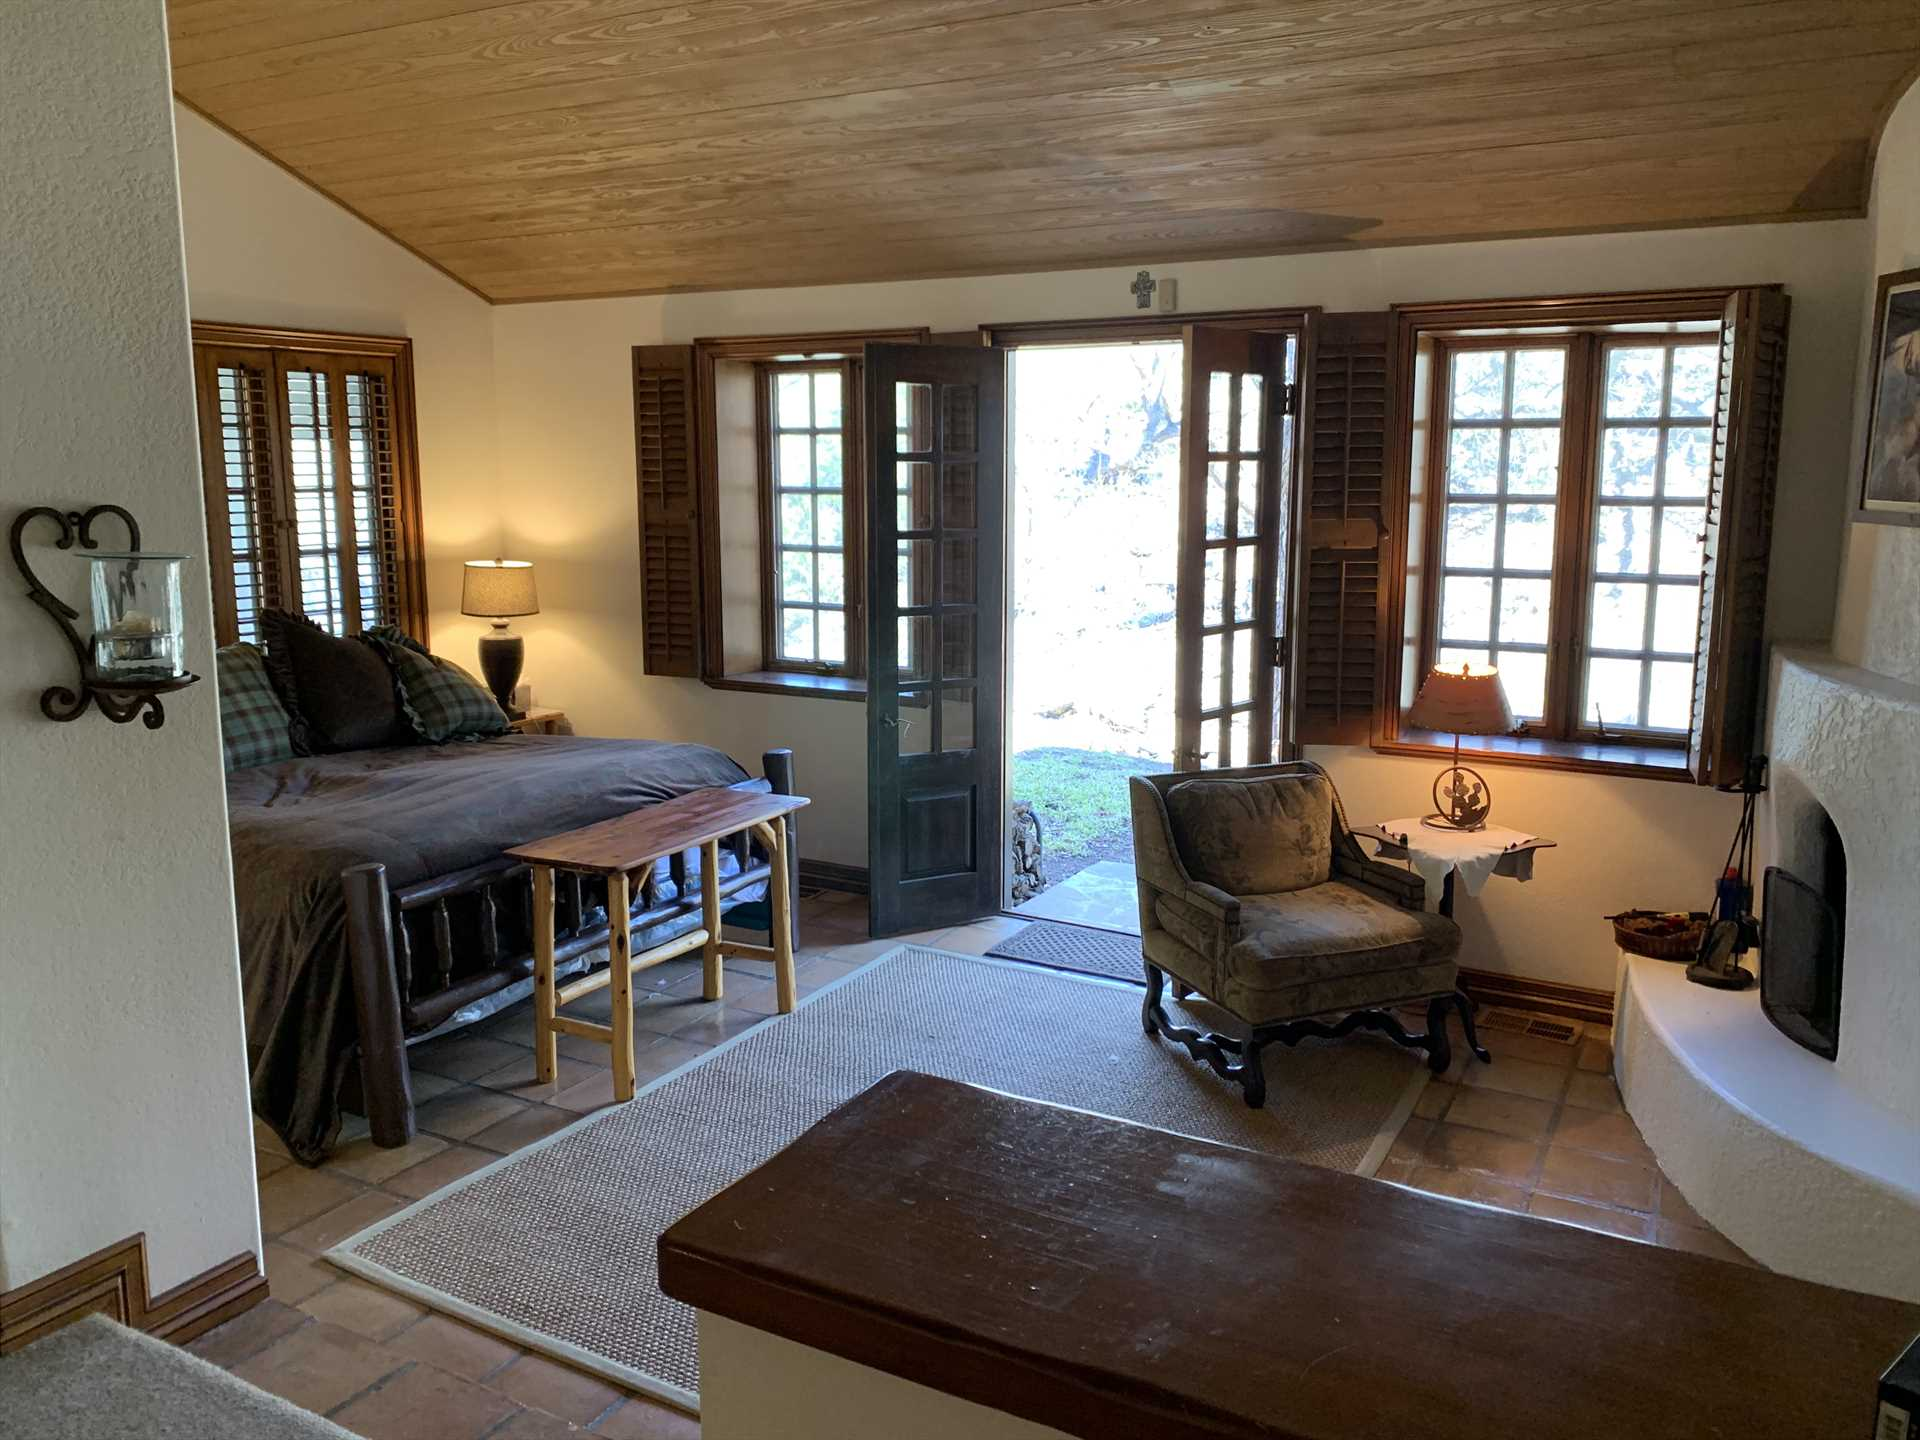 The huge master suite in the Homestead includes a king and queen bed-and all bed and bath linens in all the guest homes are provided. Those big double doors open directly to the great outdoors, too!